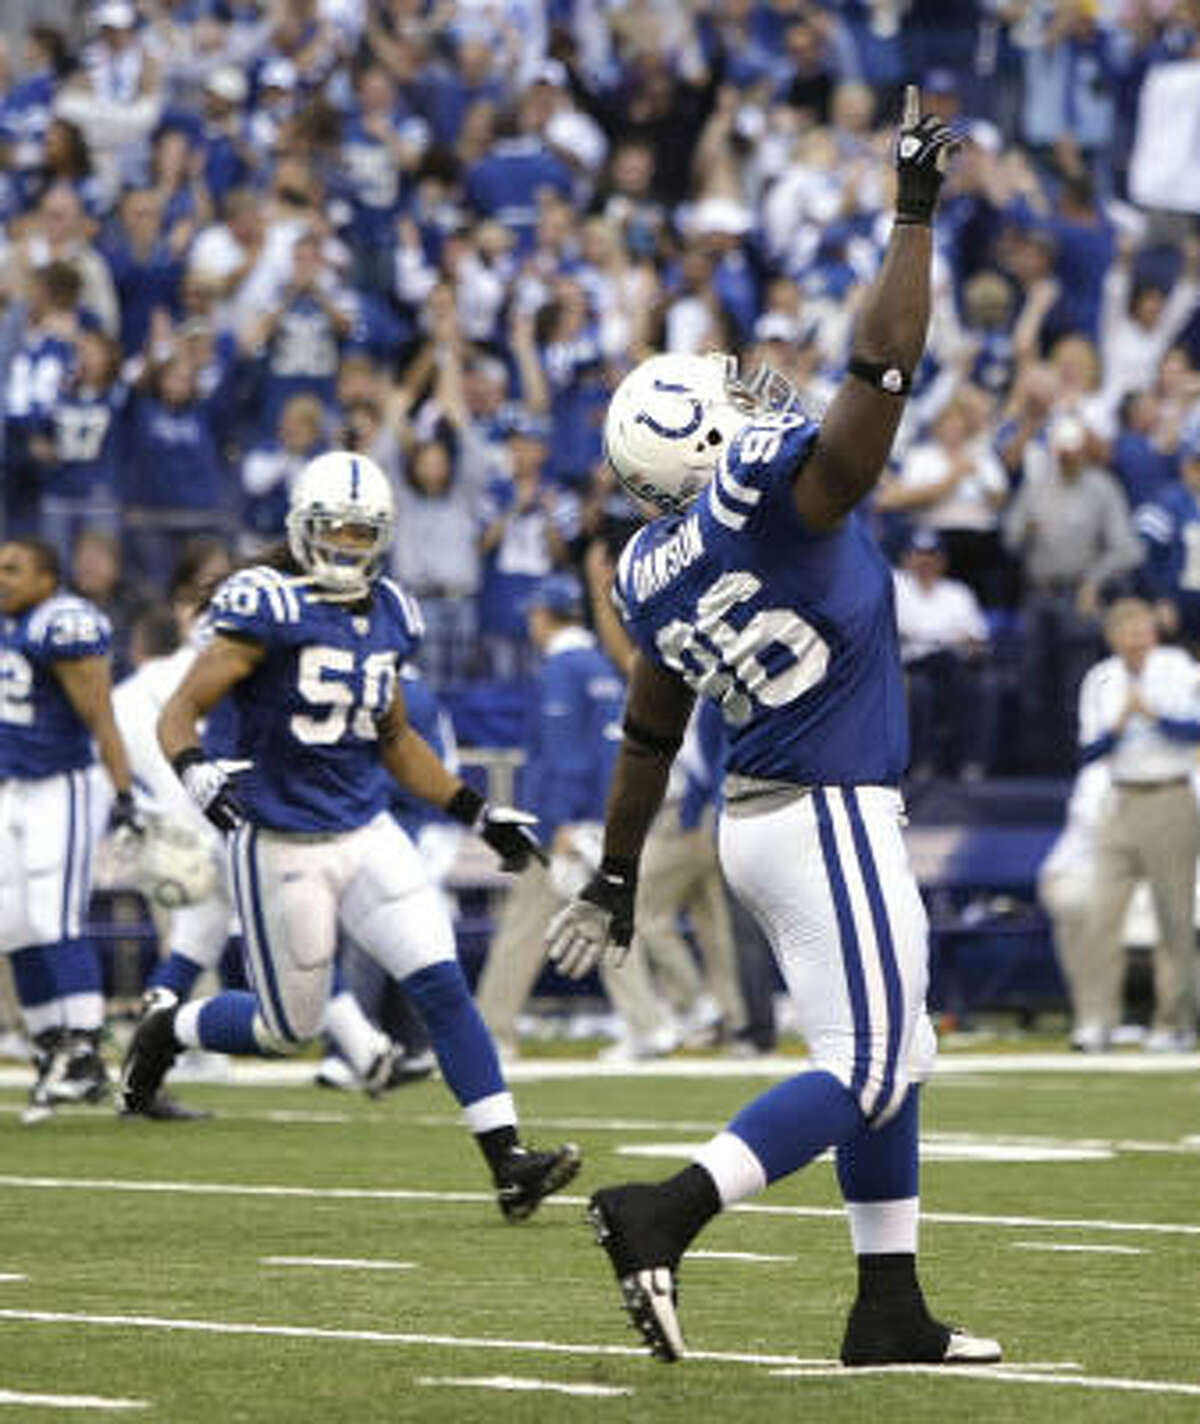 Colts defensive tackle Keyunta Dawson (96) and linebacker Philip Wheeler (50) celebrate the Colts' win over the Texans.